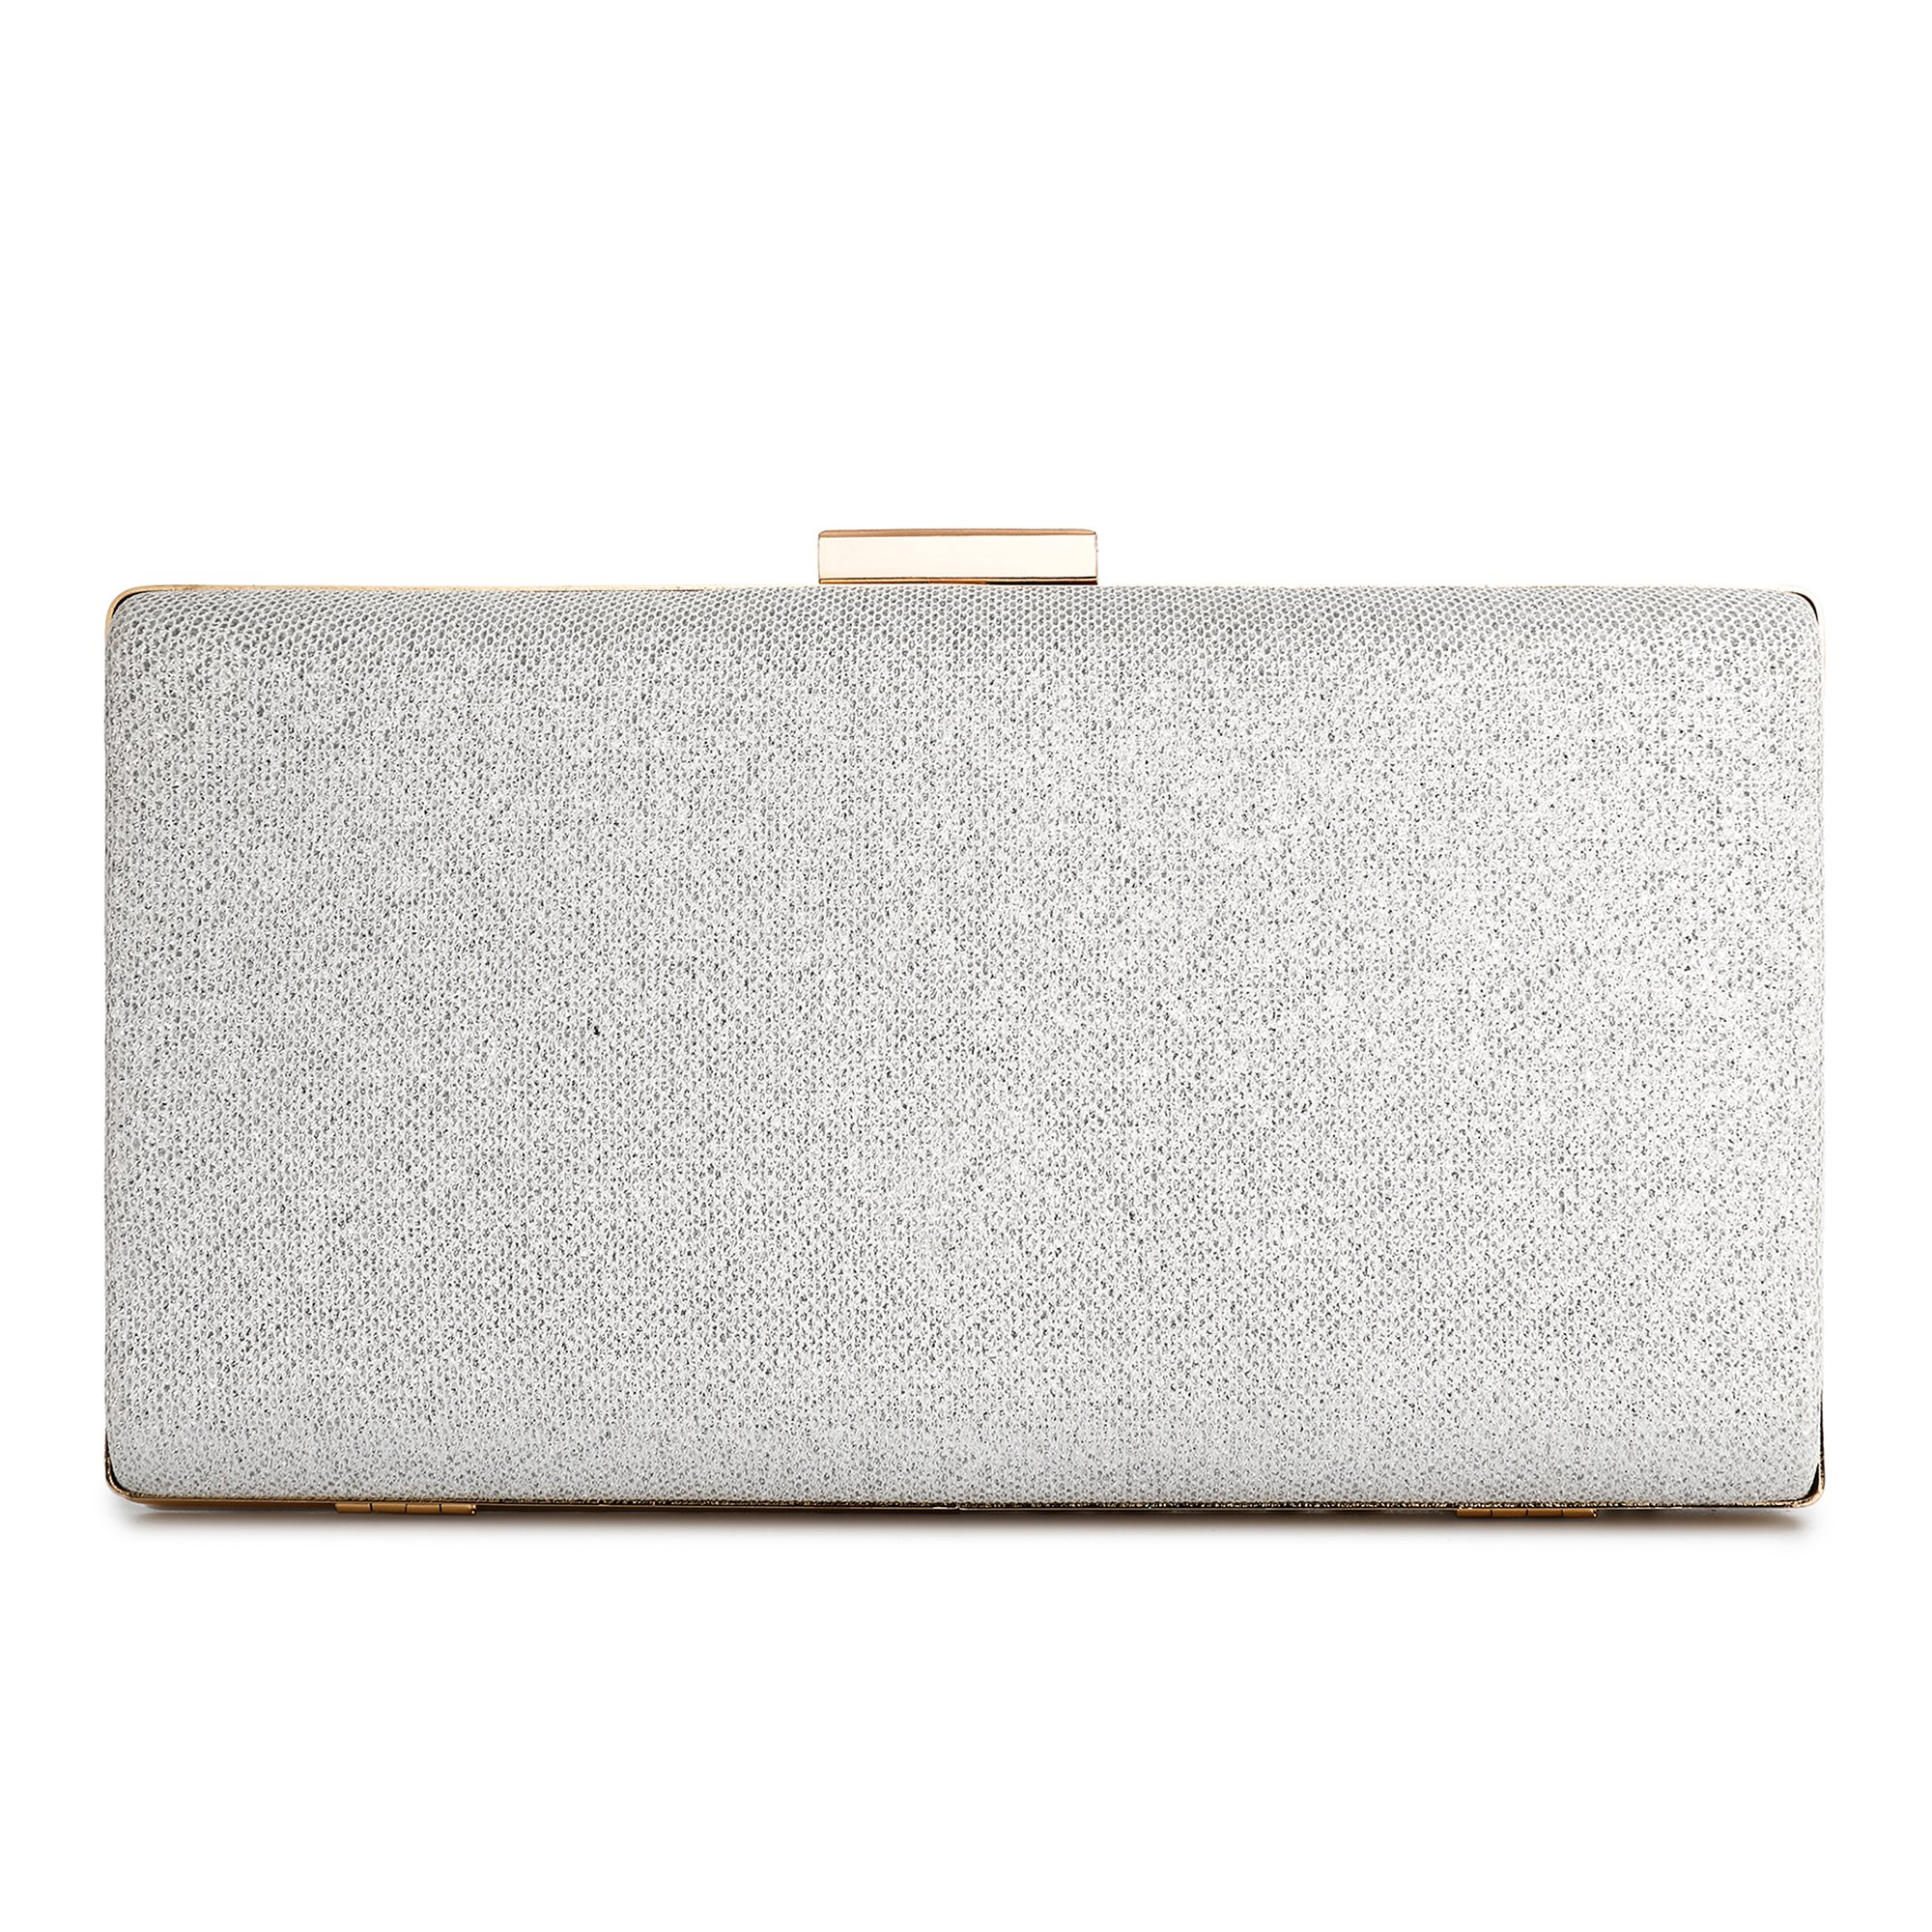 Minicastle Large Womens Noble Evening Clutch Bag Wedding Purse Bridal Prom Handbag Party Bag Silver by Minicastle (Image #2)